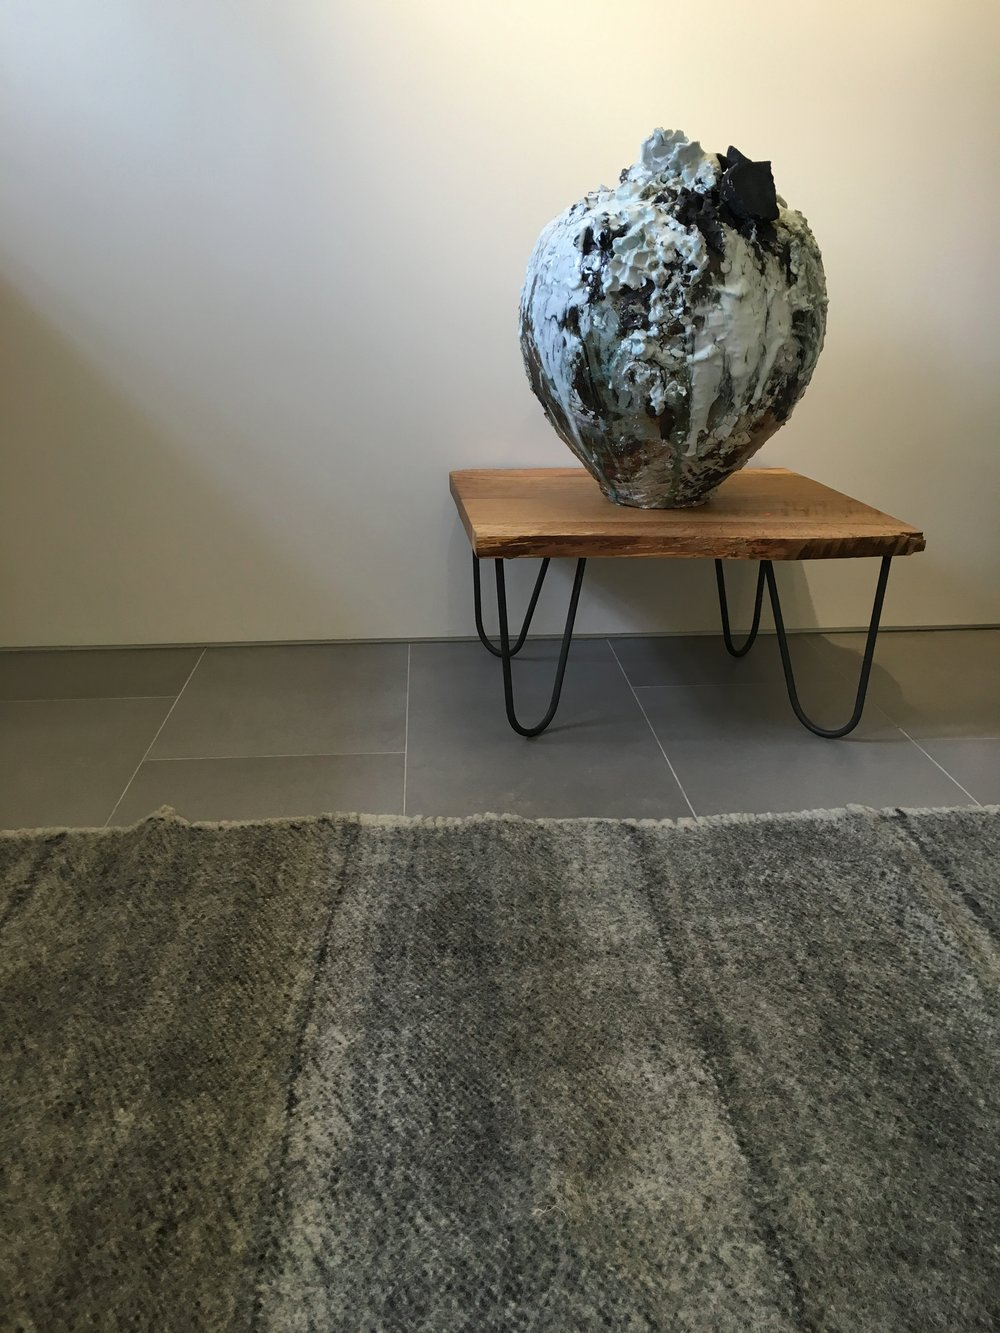 Akiko Hirai's Moonjar, displayed here with one of our radhi rugs at Flow Gallery last year.